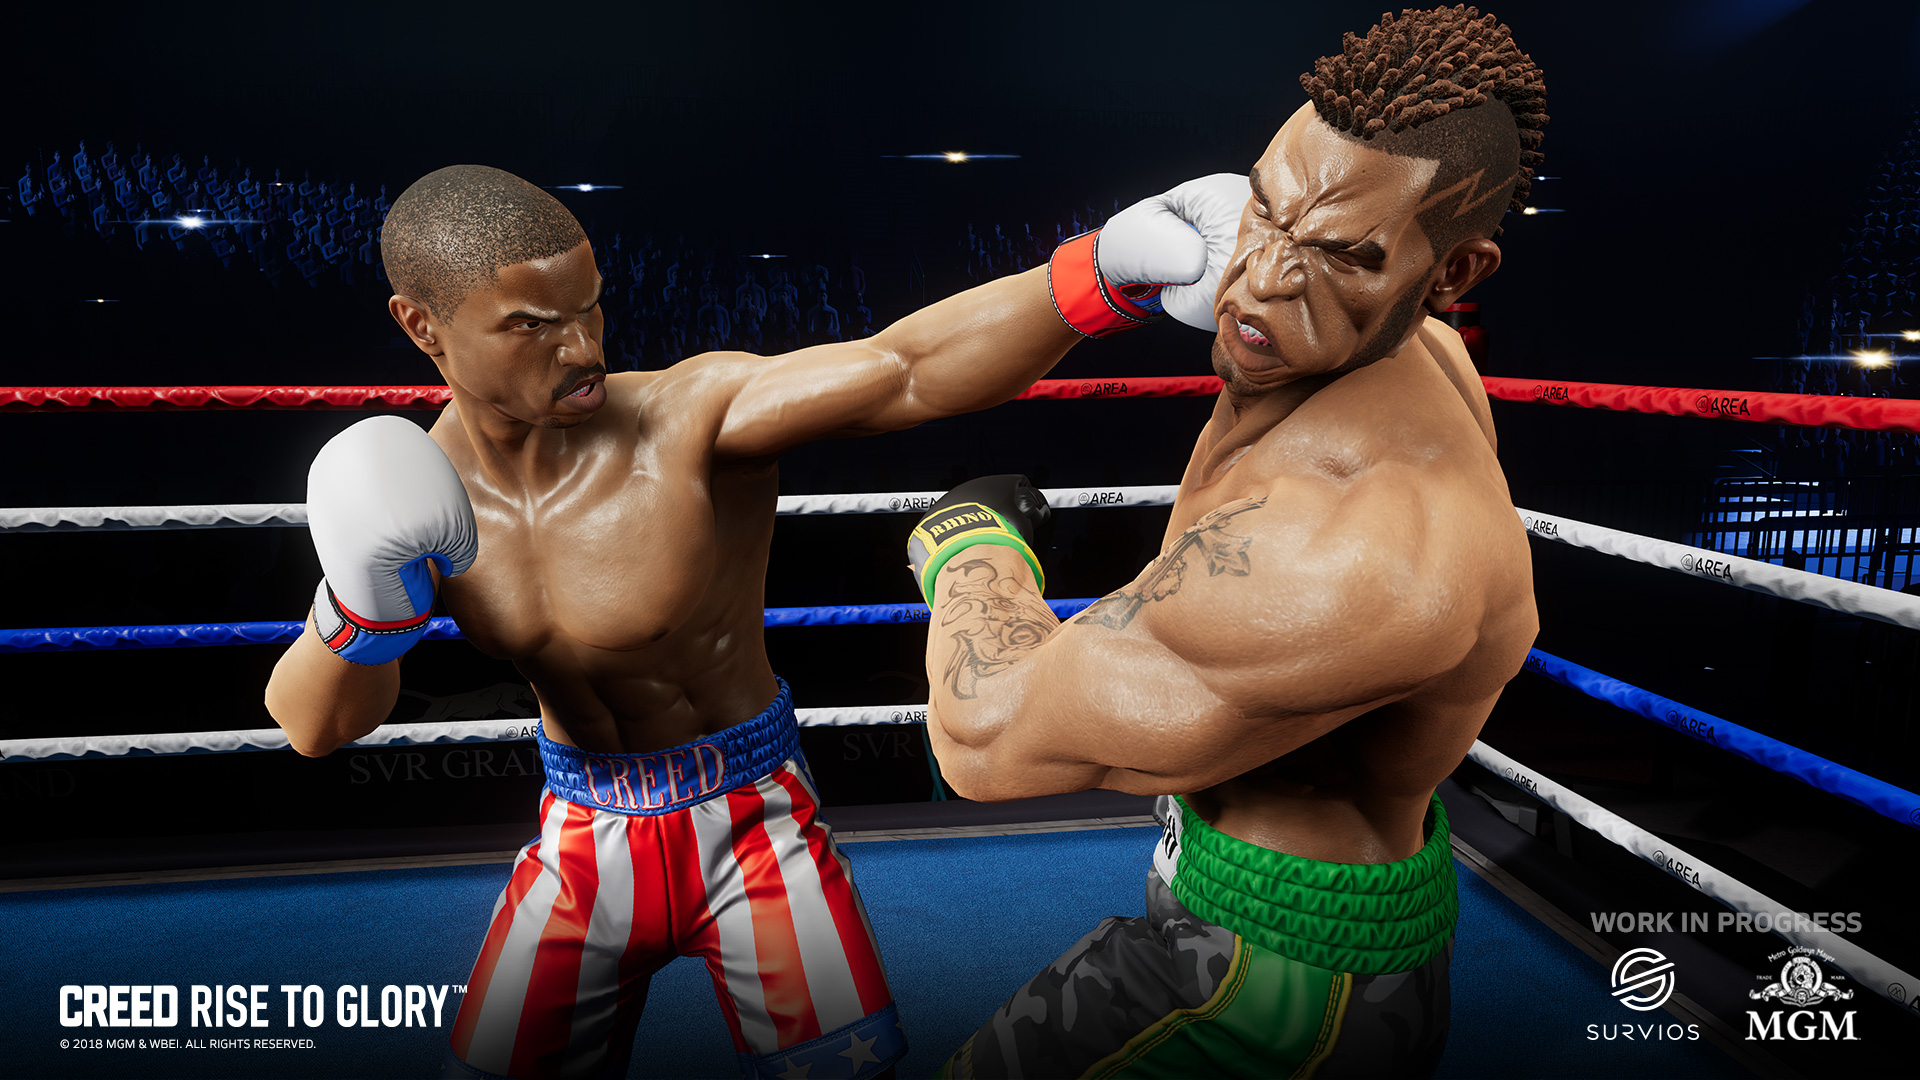 Creed: Rise to Glory Survios boxing game vr